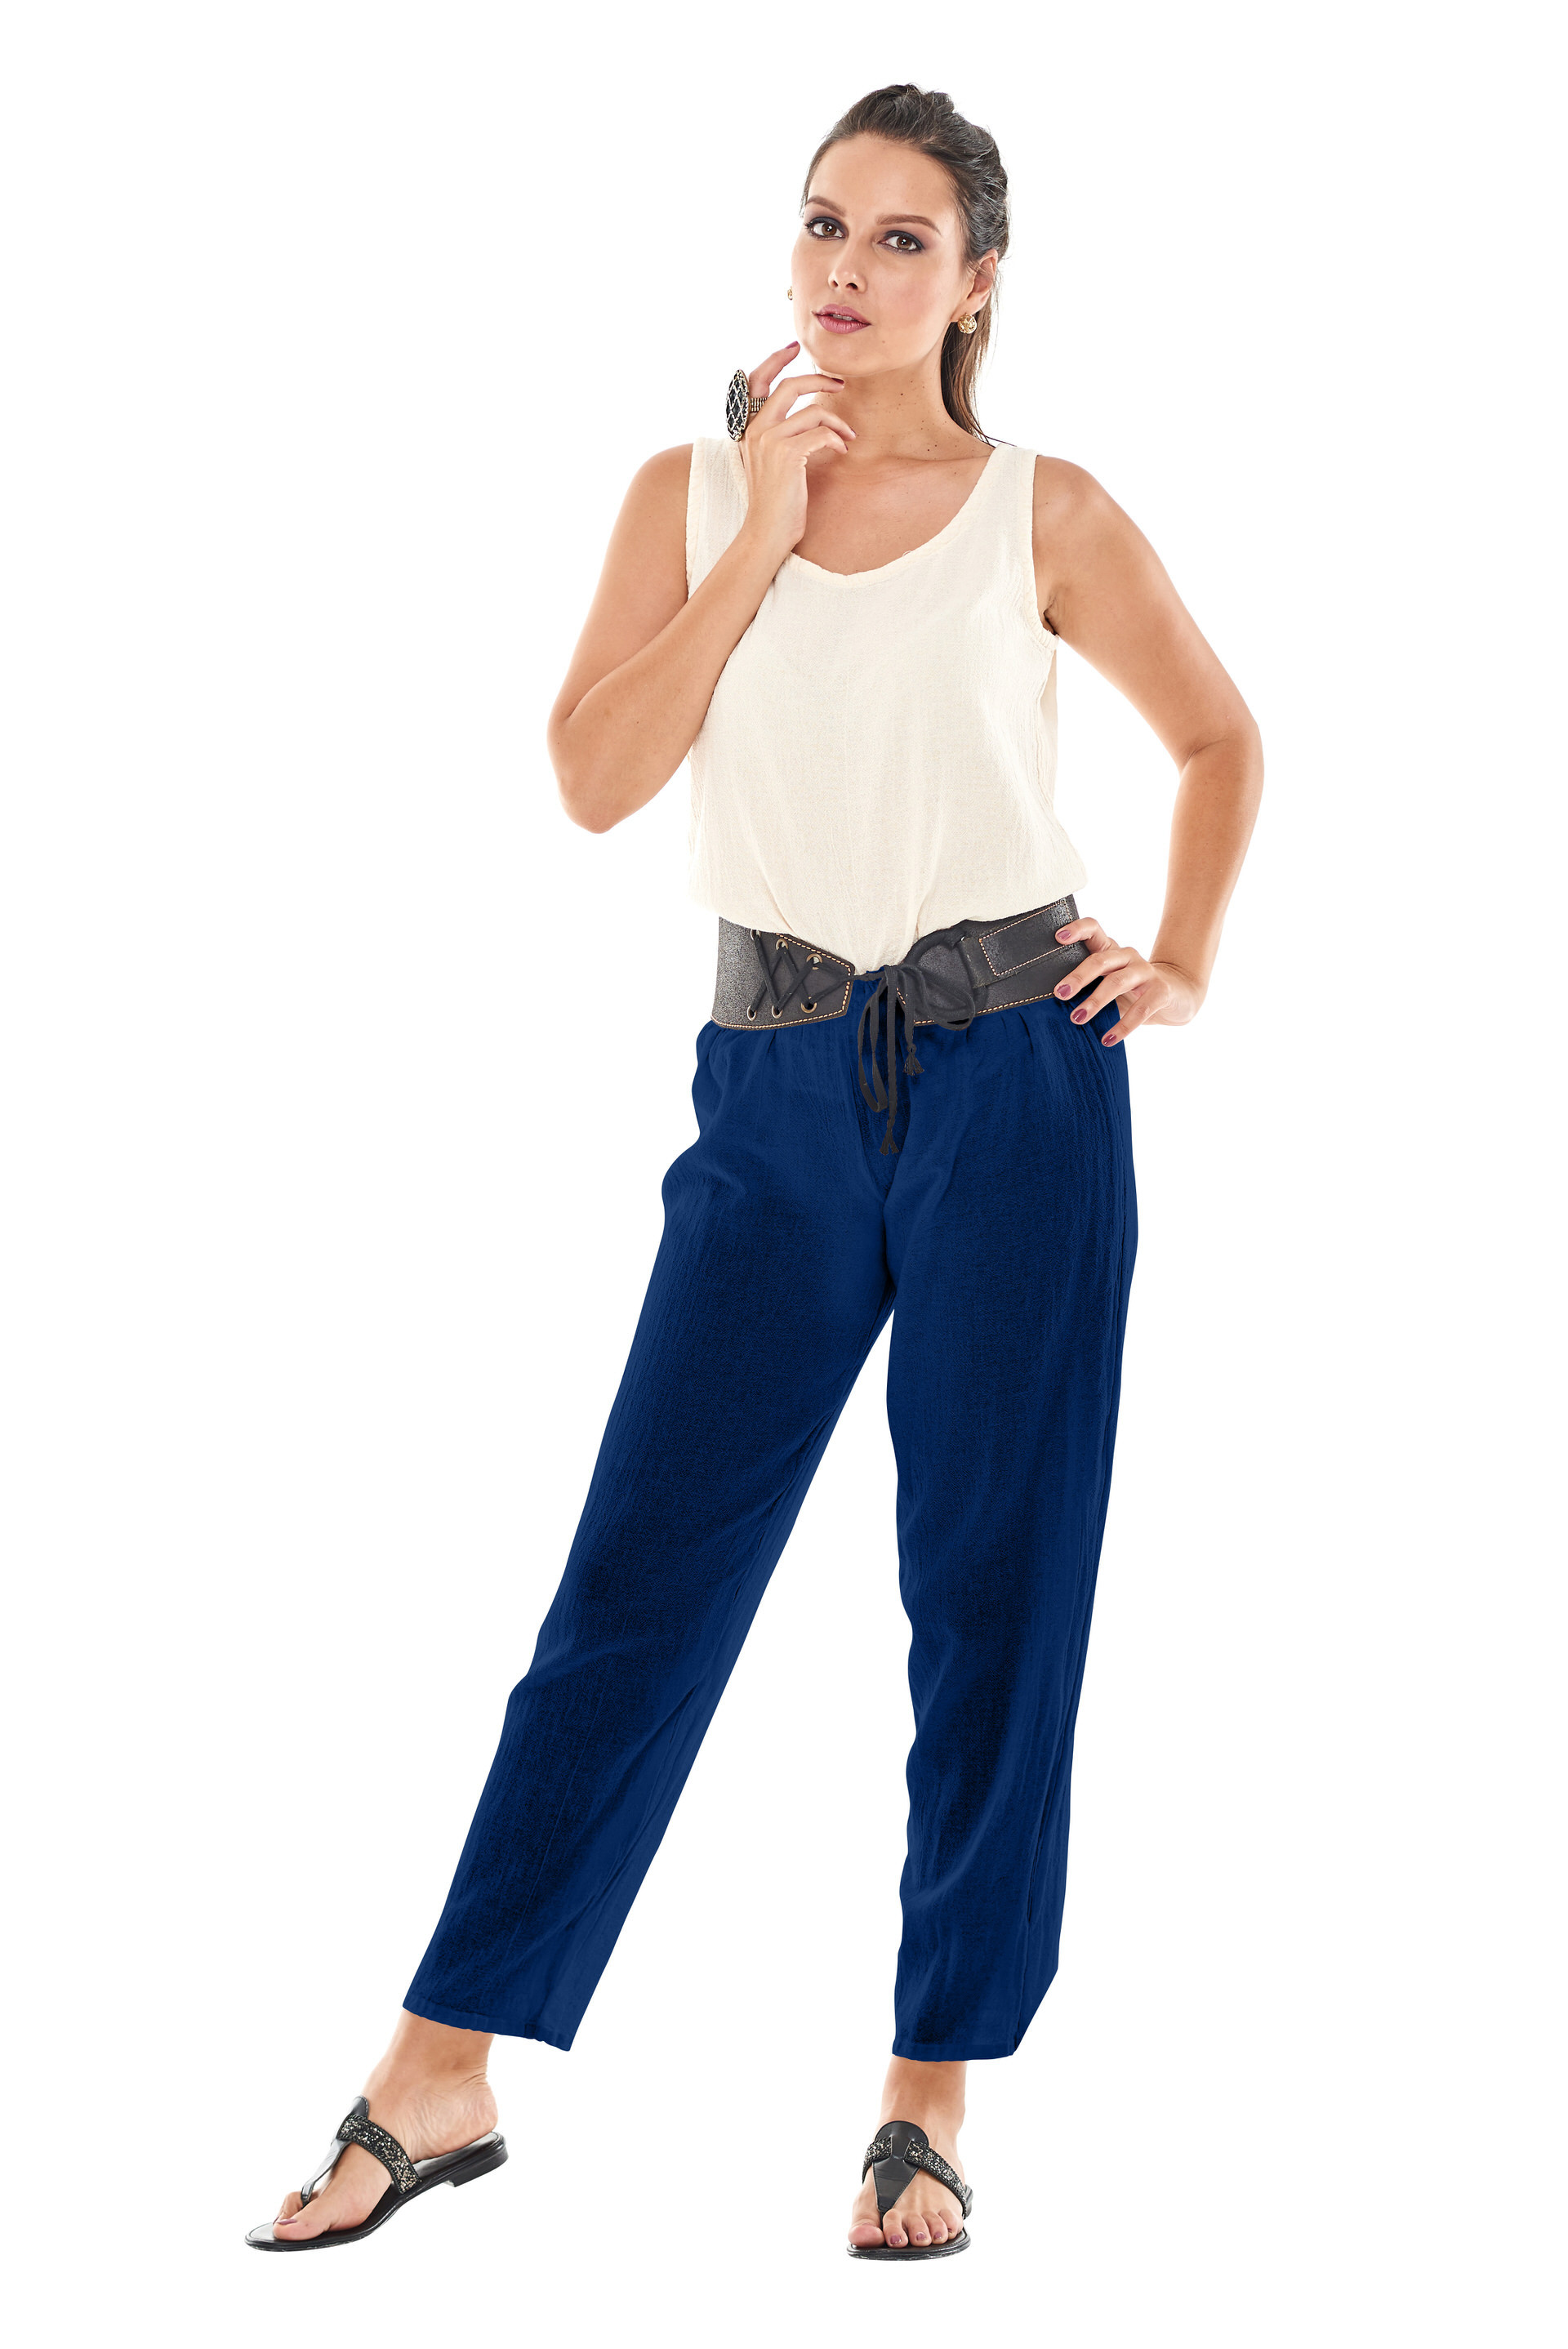 OMG - A simple cotton gauze pant in a slender cut and tapered leg.